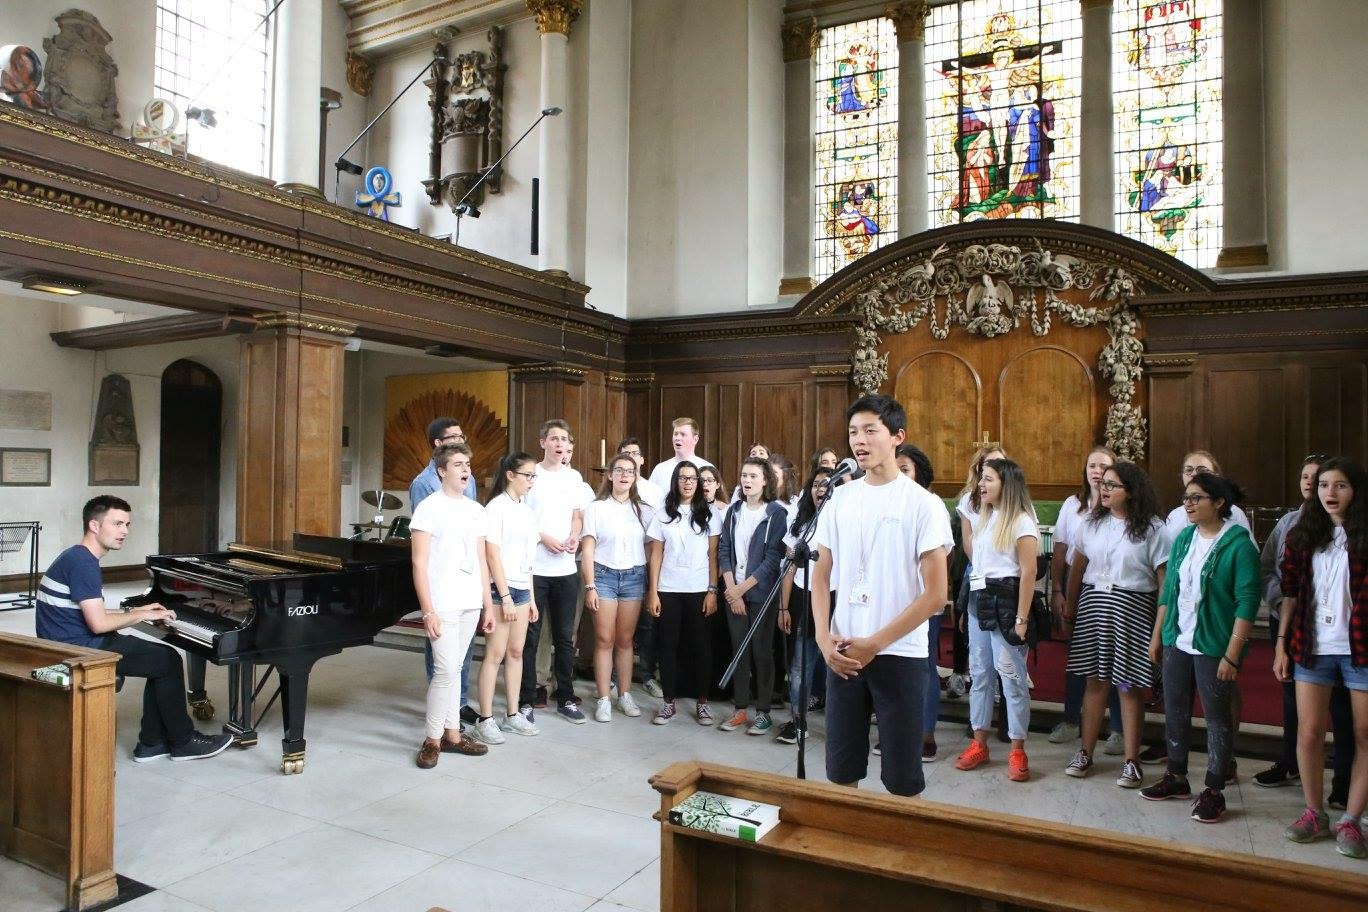 Working with the choir at the Ingenium Academy concert, St James's Church, Picadilly